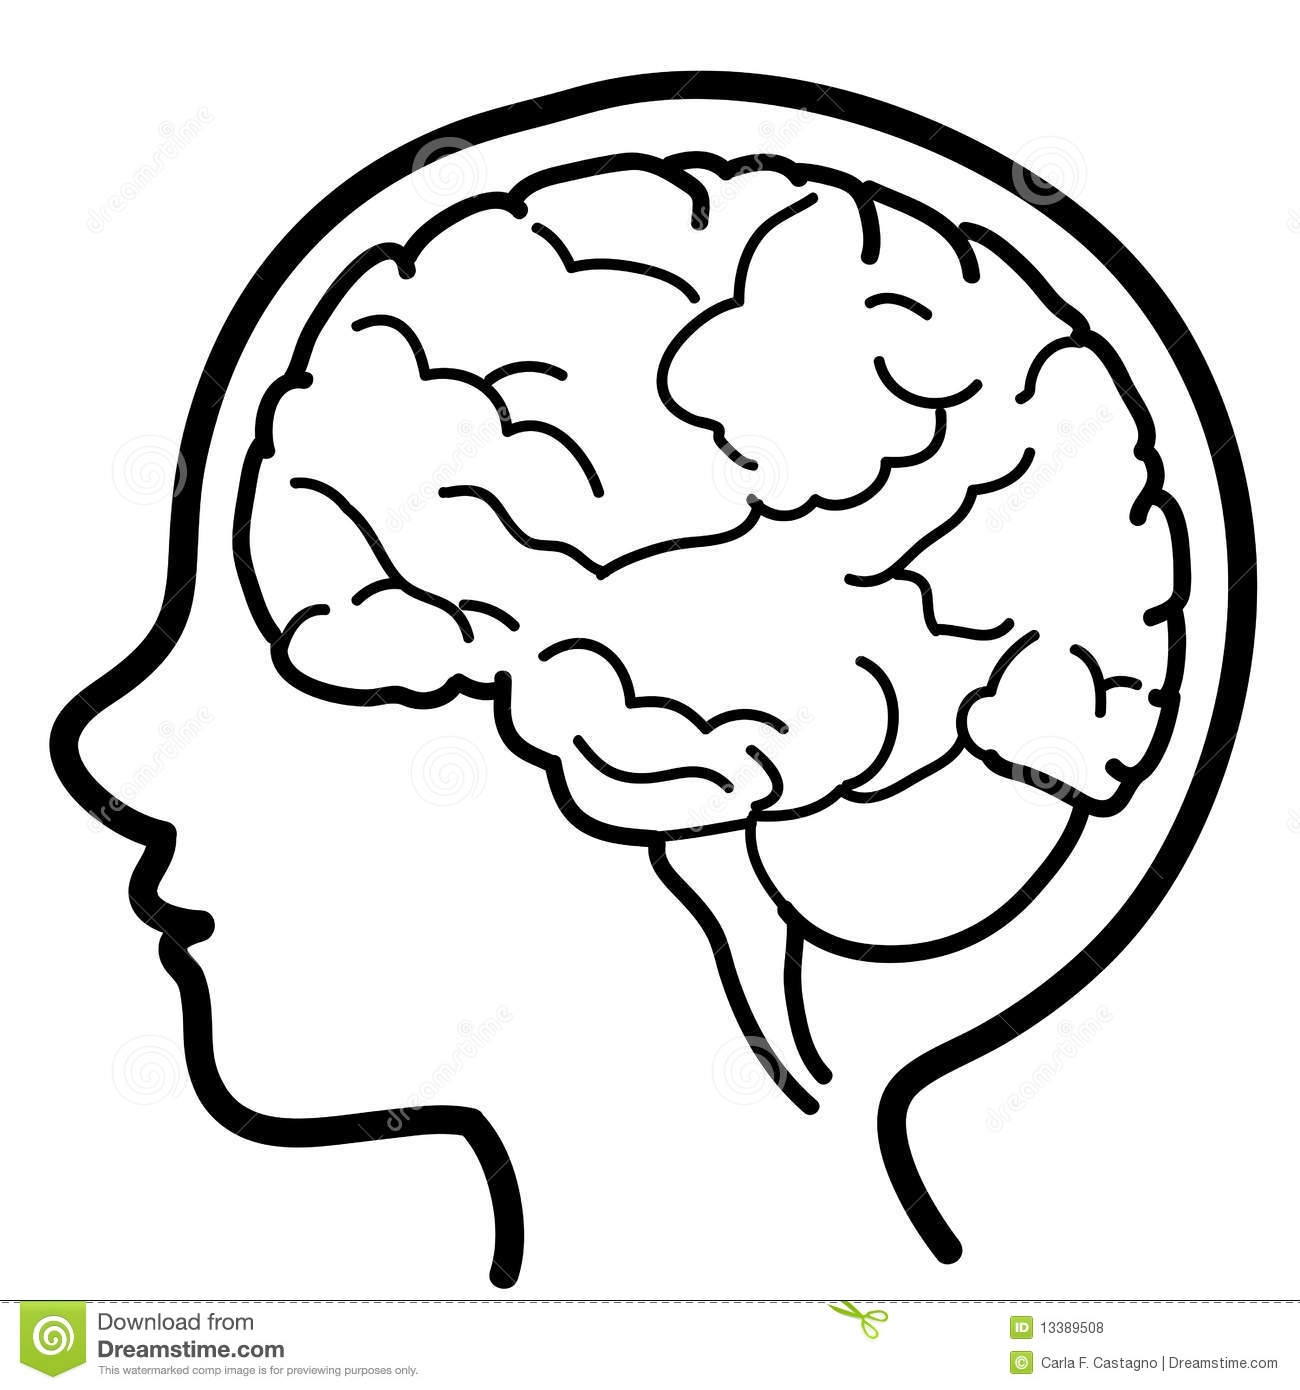 hight resolution of black and white brain clipart